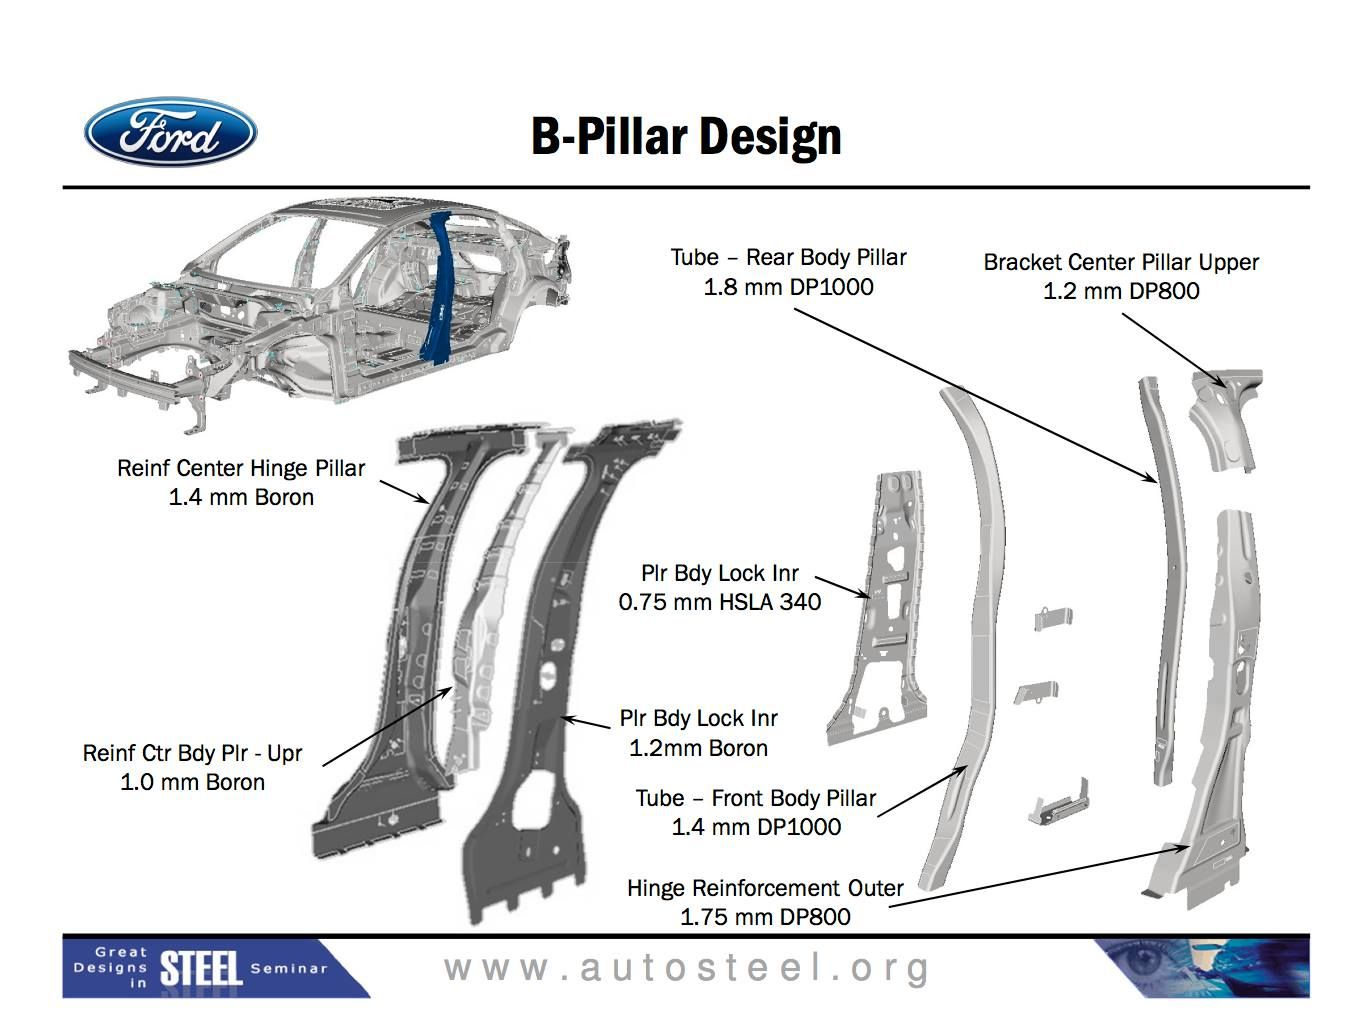 small resolution of 2014 ford fusion b pillar body closures biw extrication